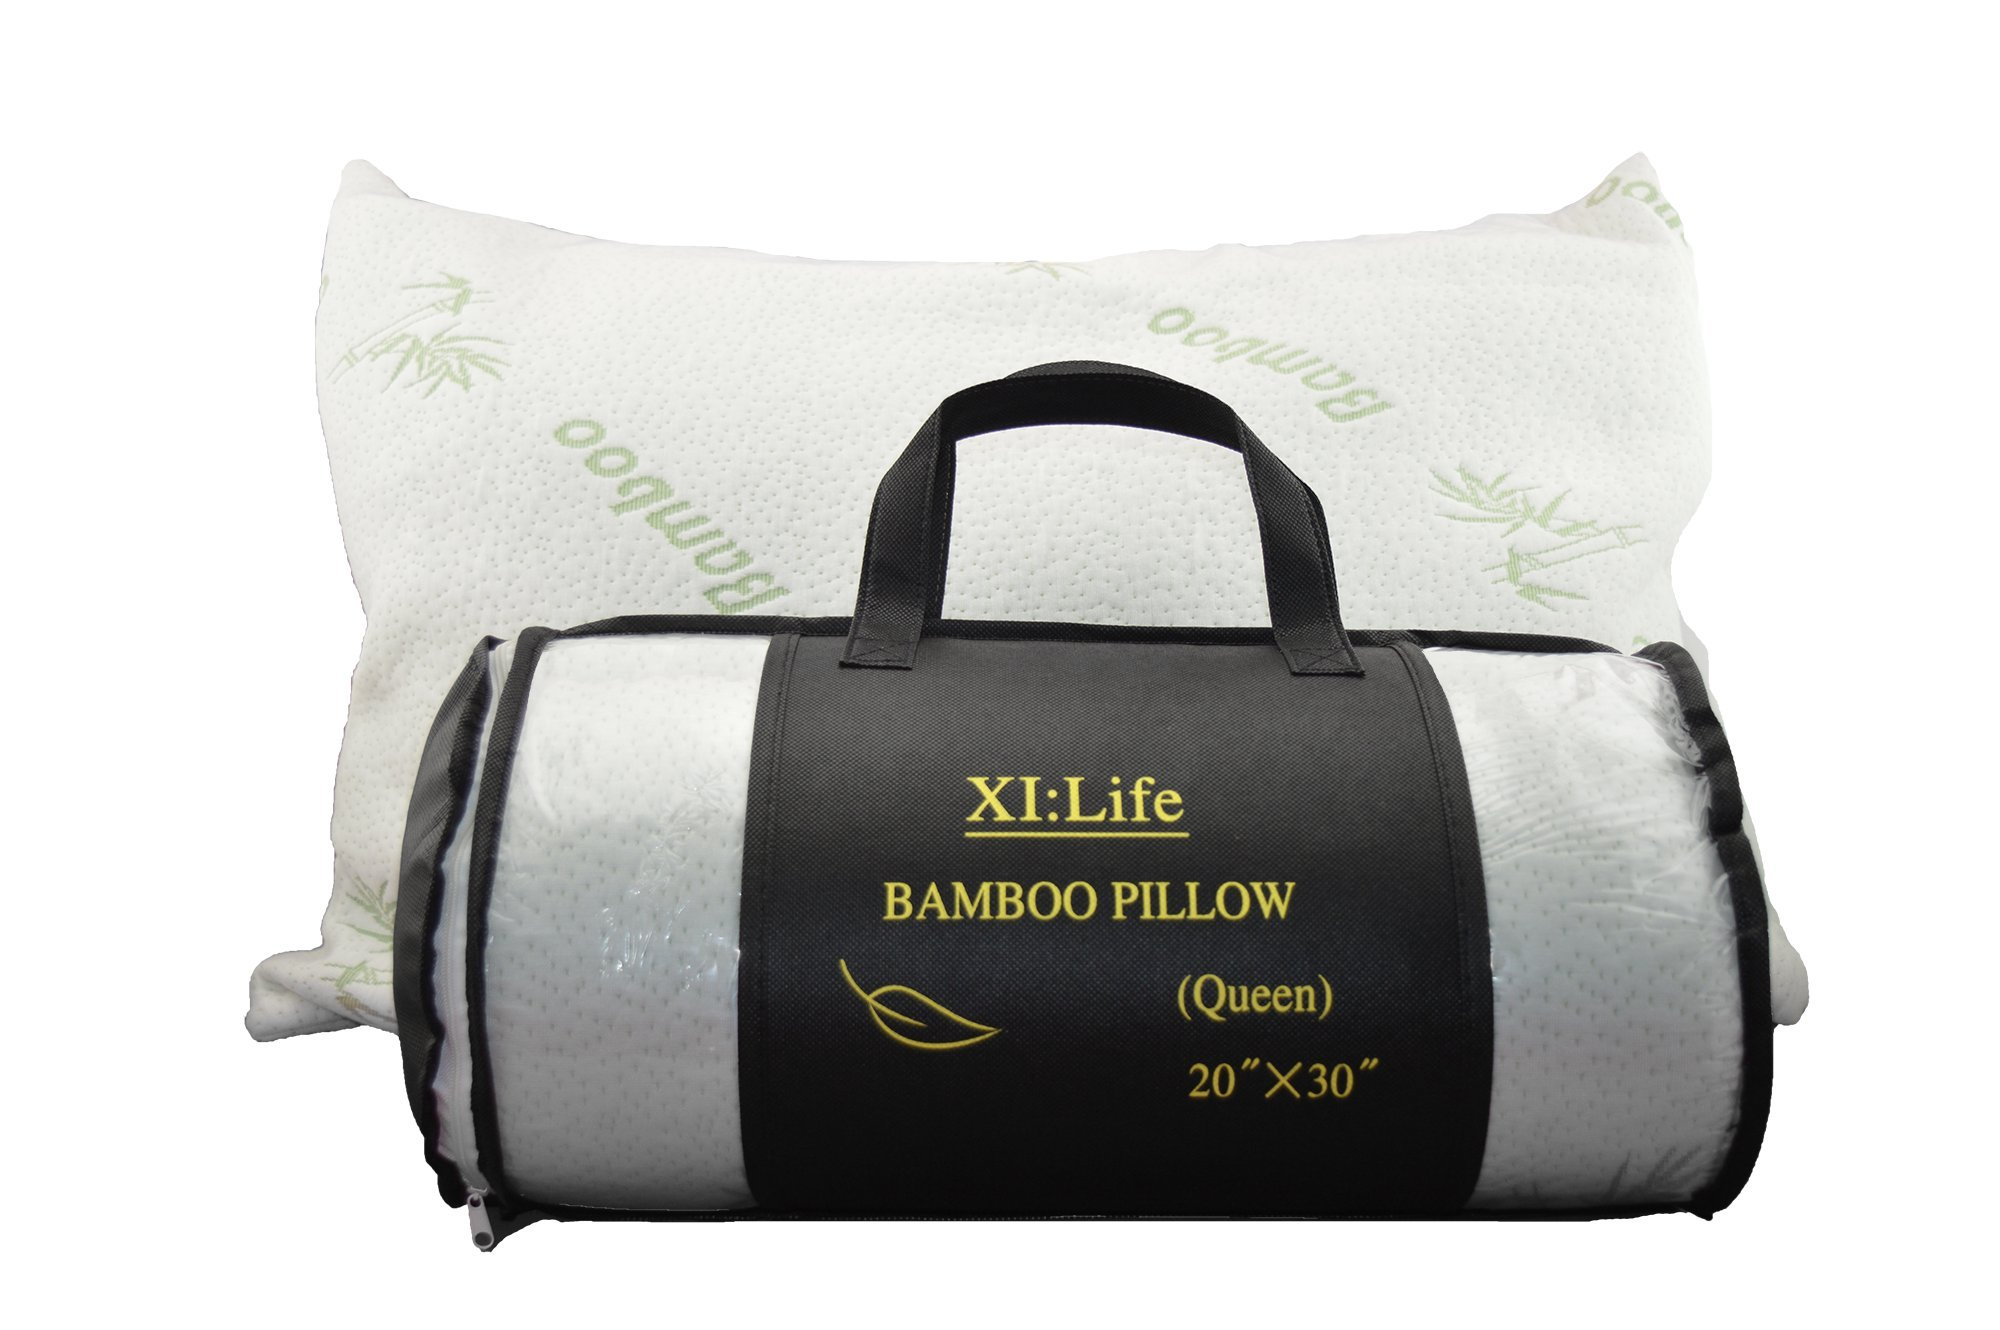 Luxury Shredded Memory Foam Jumbo Queen Size Pillow with Padded Bamboo Cover - Hypoallergenic Hotel Quality Feather Soft 20'' x 30'' Plush Sleep Cushion - SleepBully by XI: Life